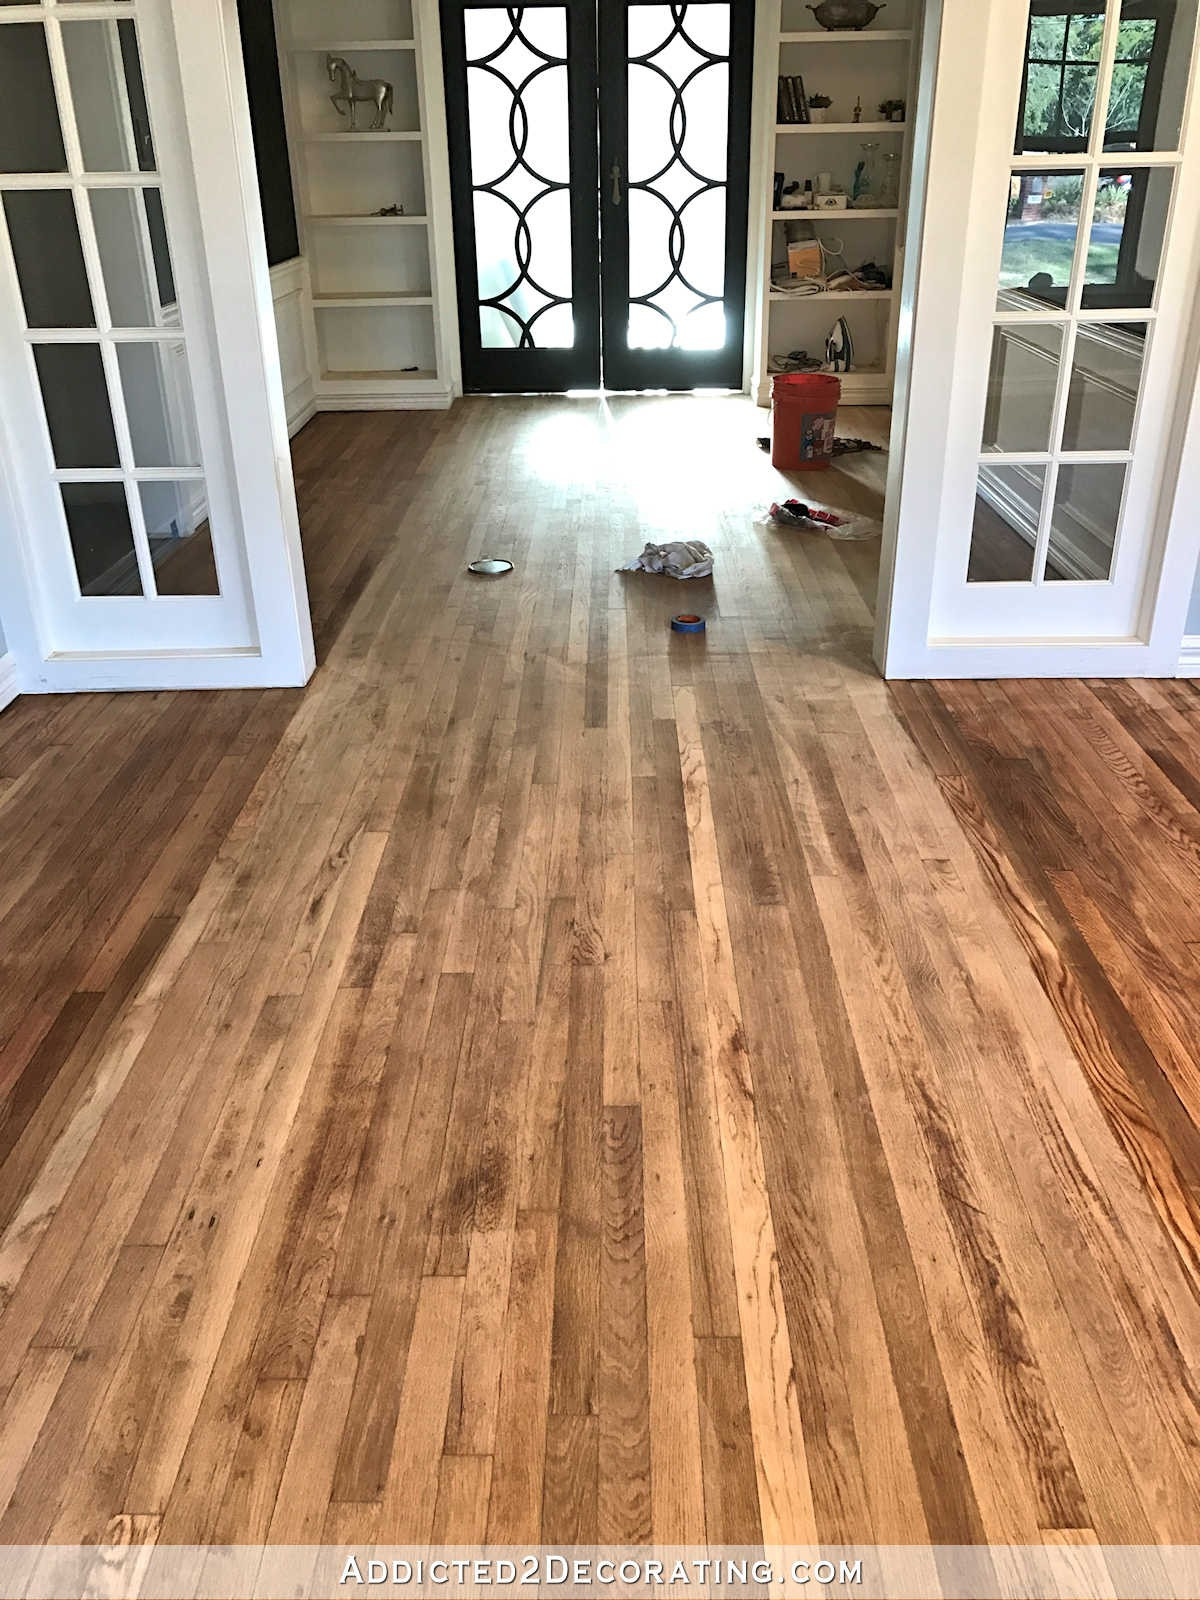 30 Famous Refinishing Hardwood Floors Vs Replacing 2021 free download refinishing hardwood floors vs replacing of 19 unique how much does it cost to refinish hardwood floors gallery with regard to how much does it cost to refinish hardwood floors unique advent